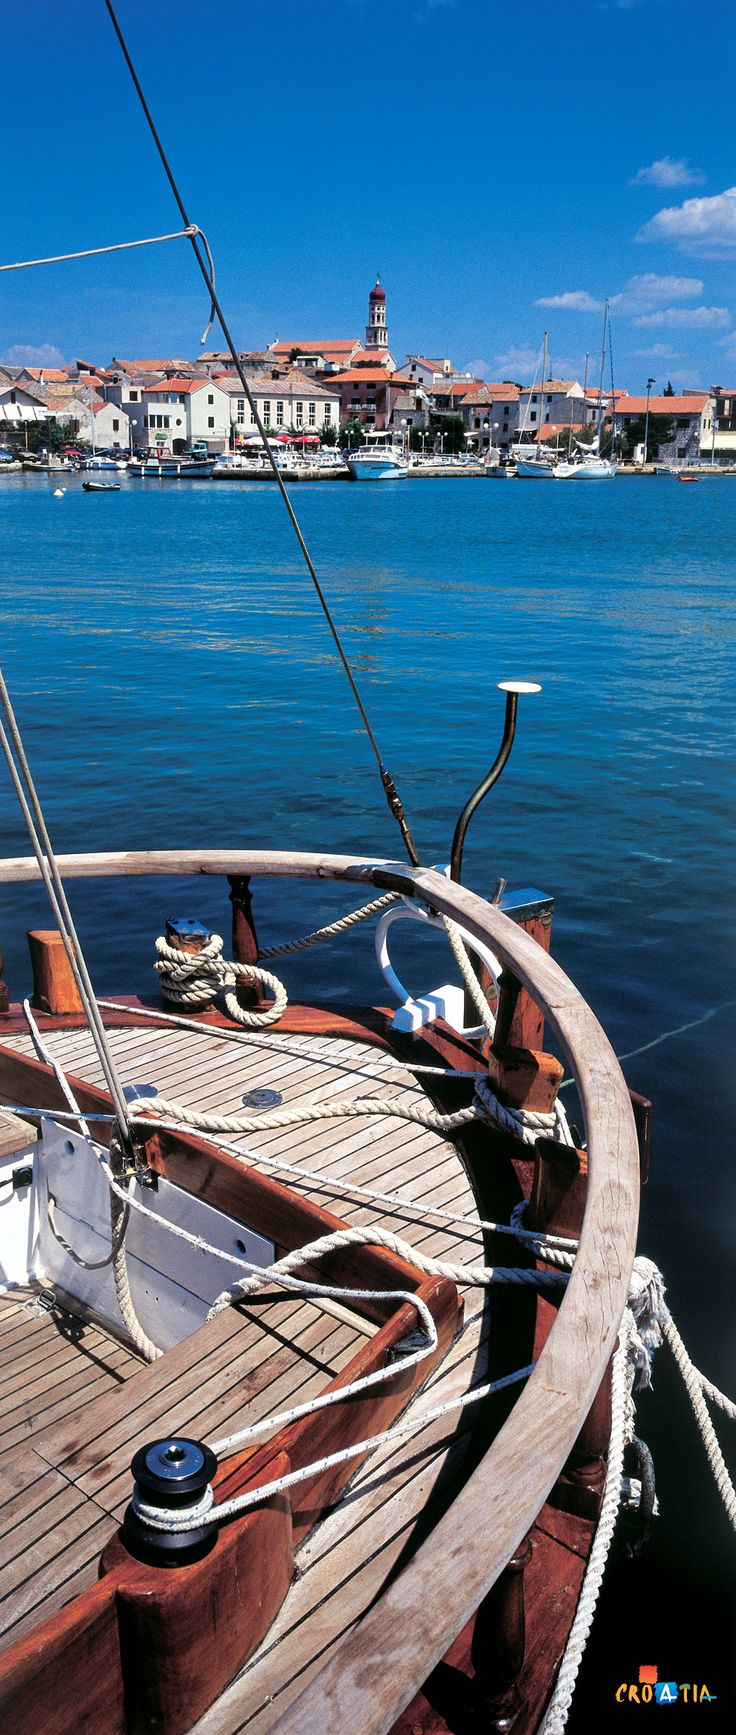 http://boatpartsandsupplies.com/ has some information on the various types of boats available for sale and some practical maintenance tips.